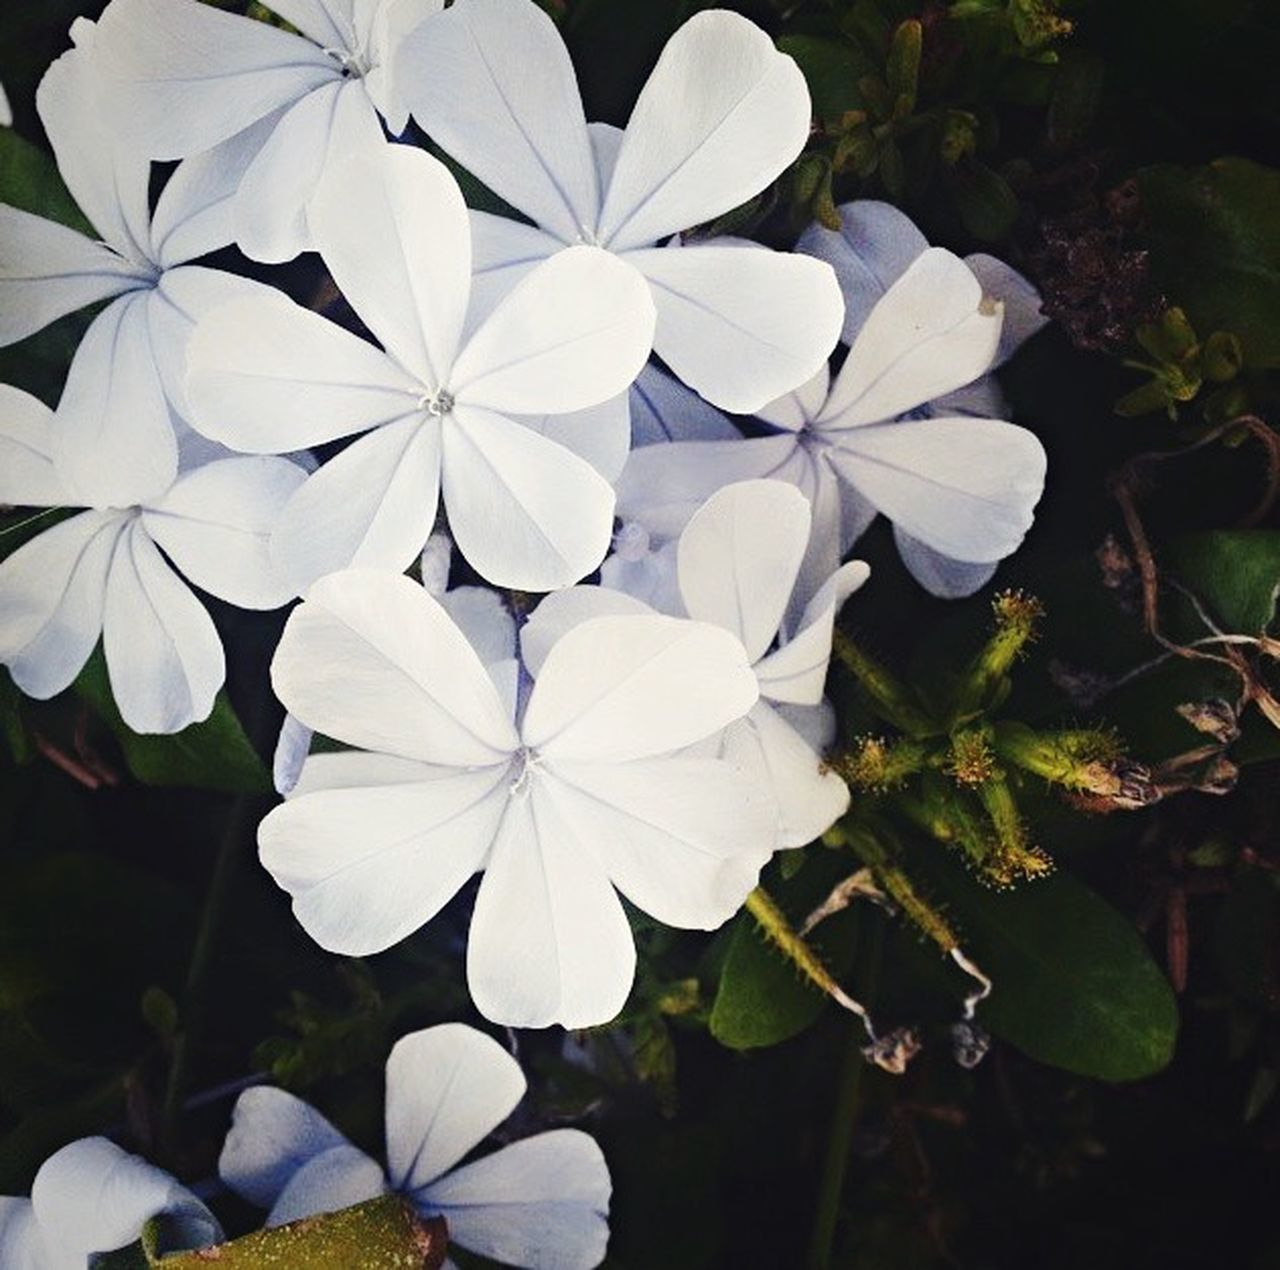 flower, growth, petal, beauty in nature, white color, plant, nature, freshness, flower head, periwinkle, blooming, fragility, no people, day, outdoors, close-up